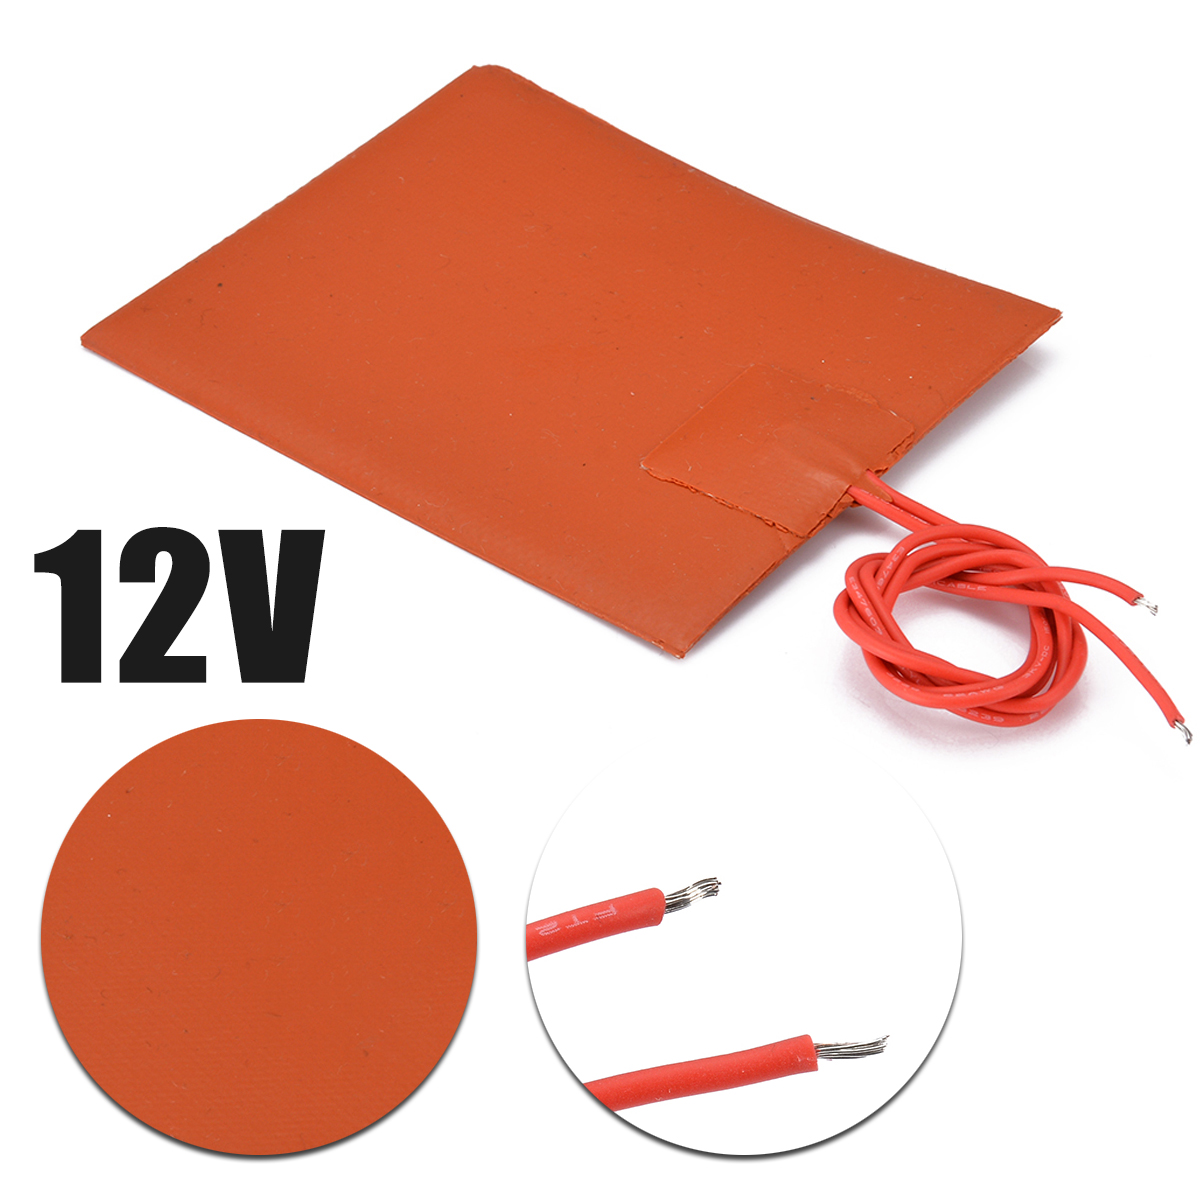 80x100mm 12V DC 20W Silicone Heated Bed Heating Pad Flexible Waterproof For 3D Printer Parts Electric Heating Pads